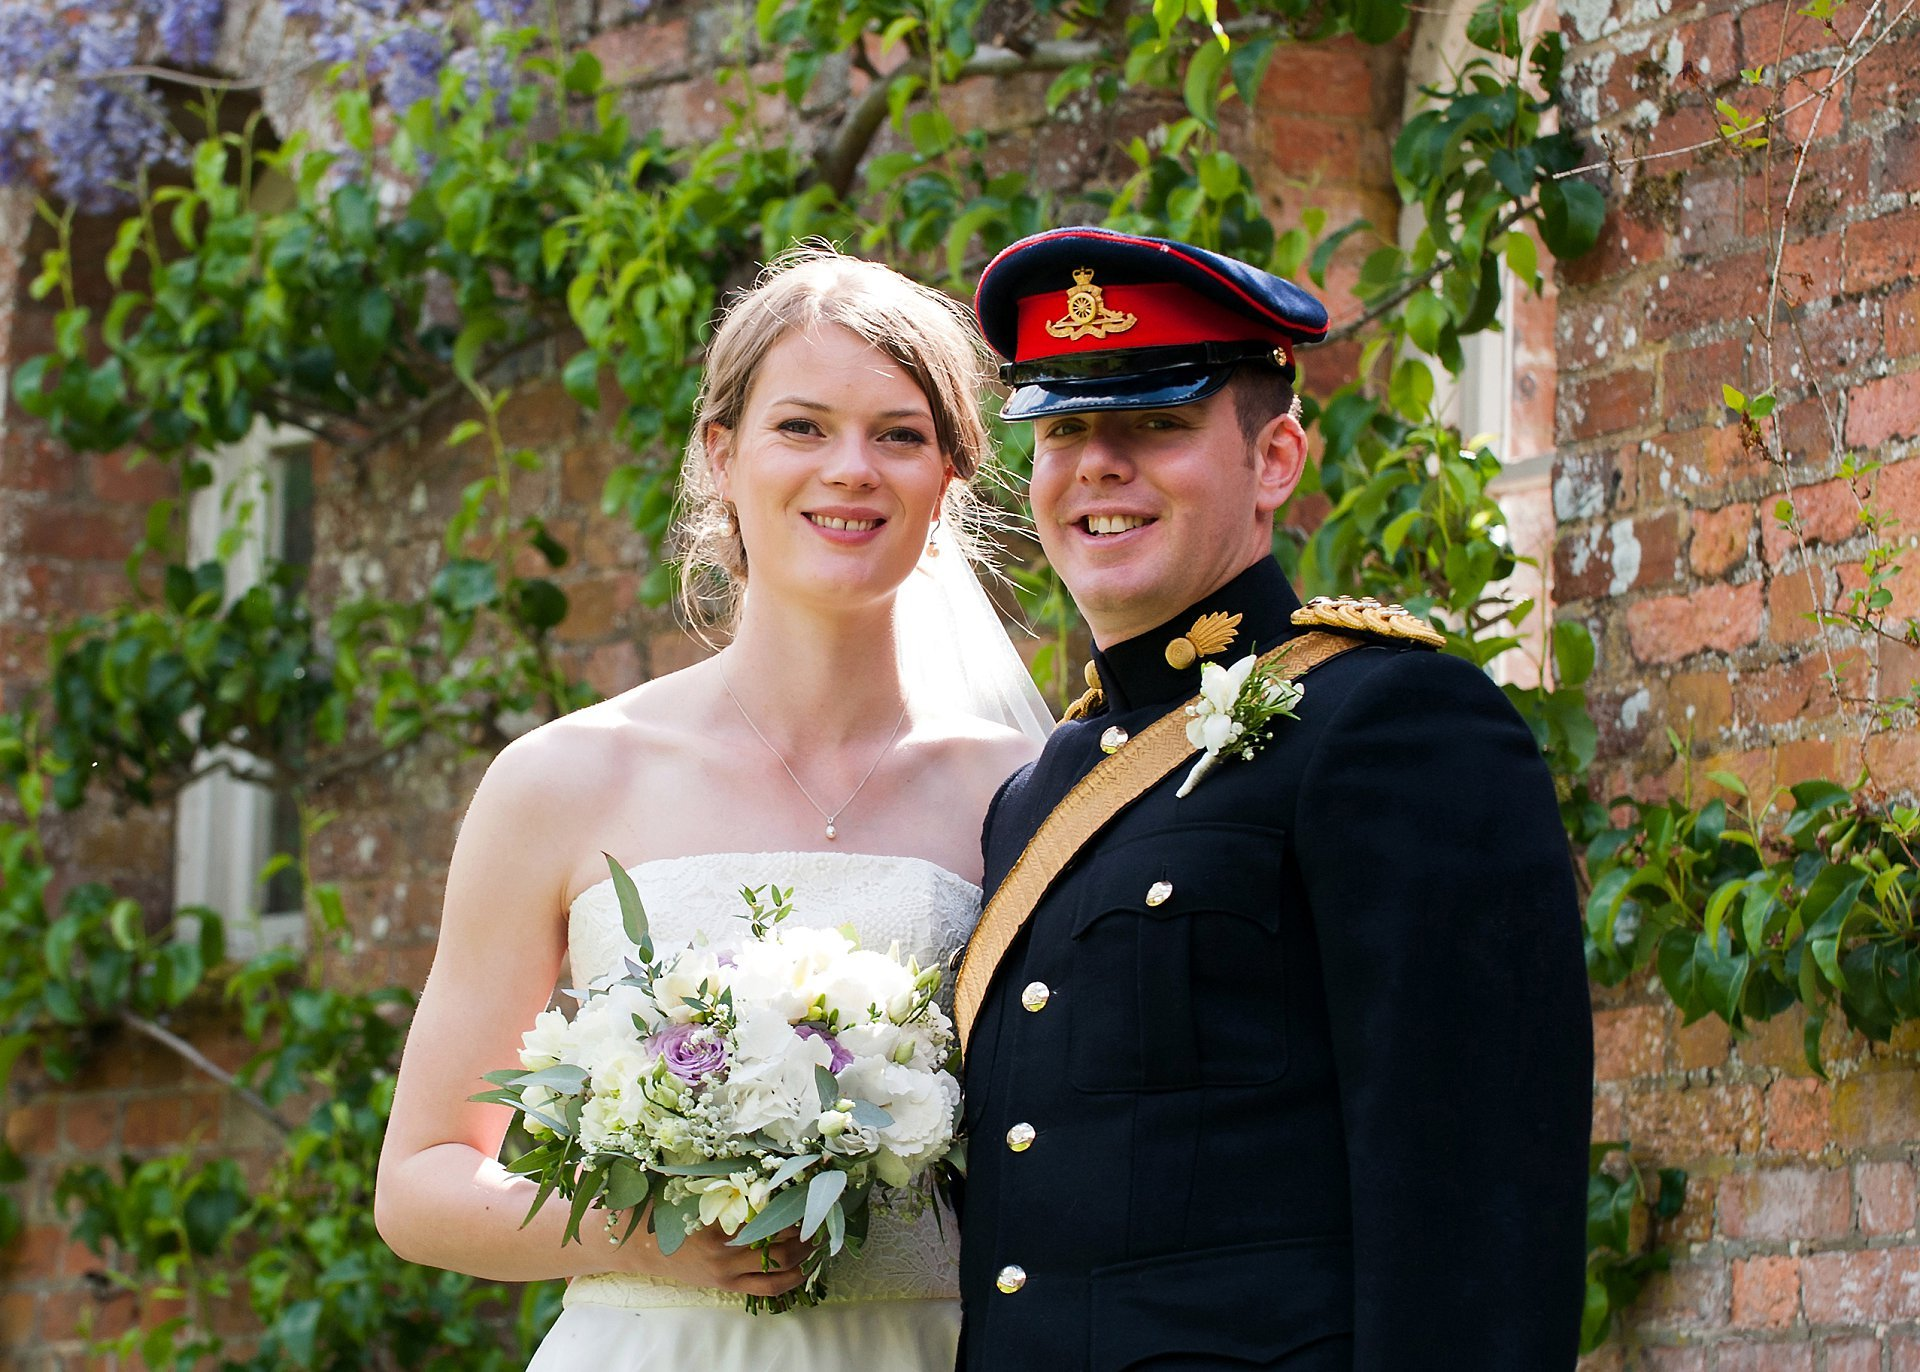 Sam and Jess at Starborough Manor, Marsh Green, Kent for their wedding reception